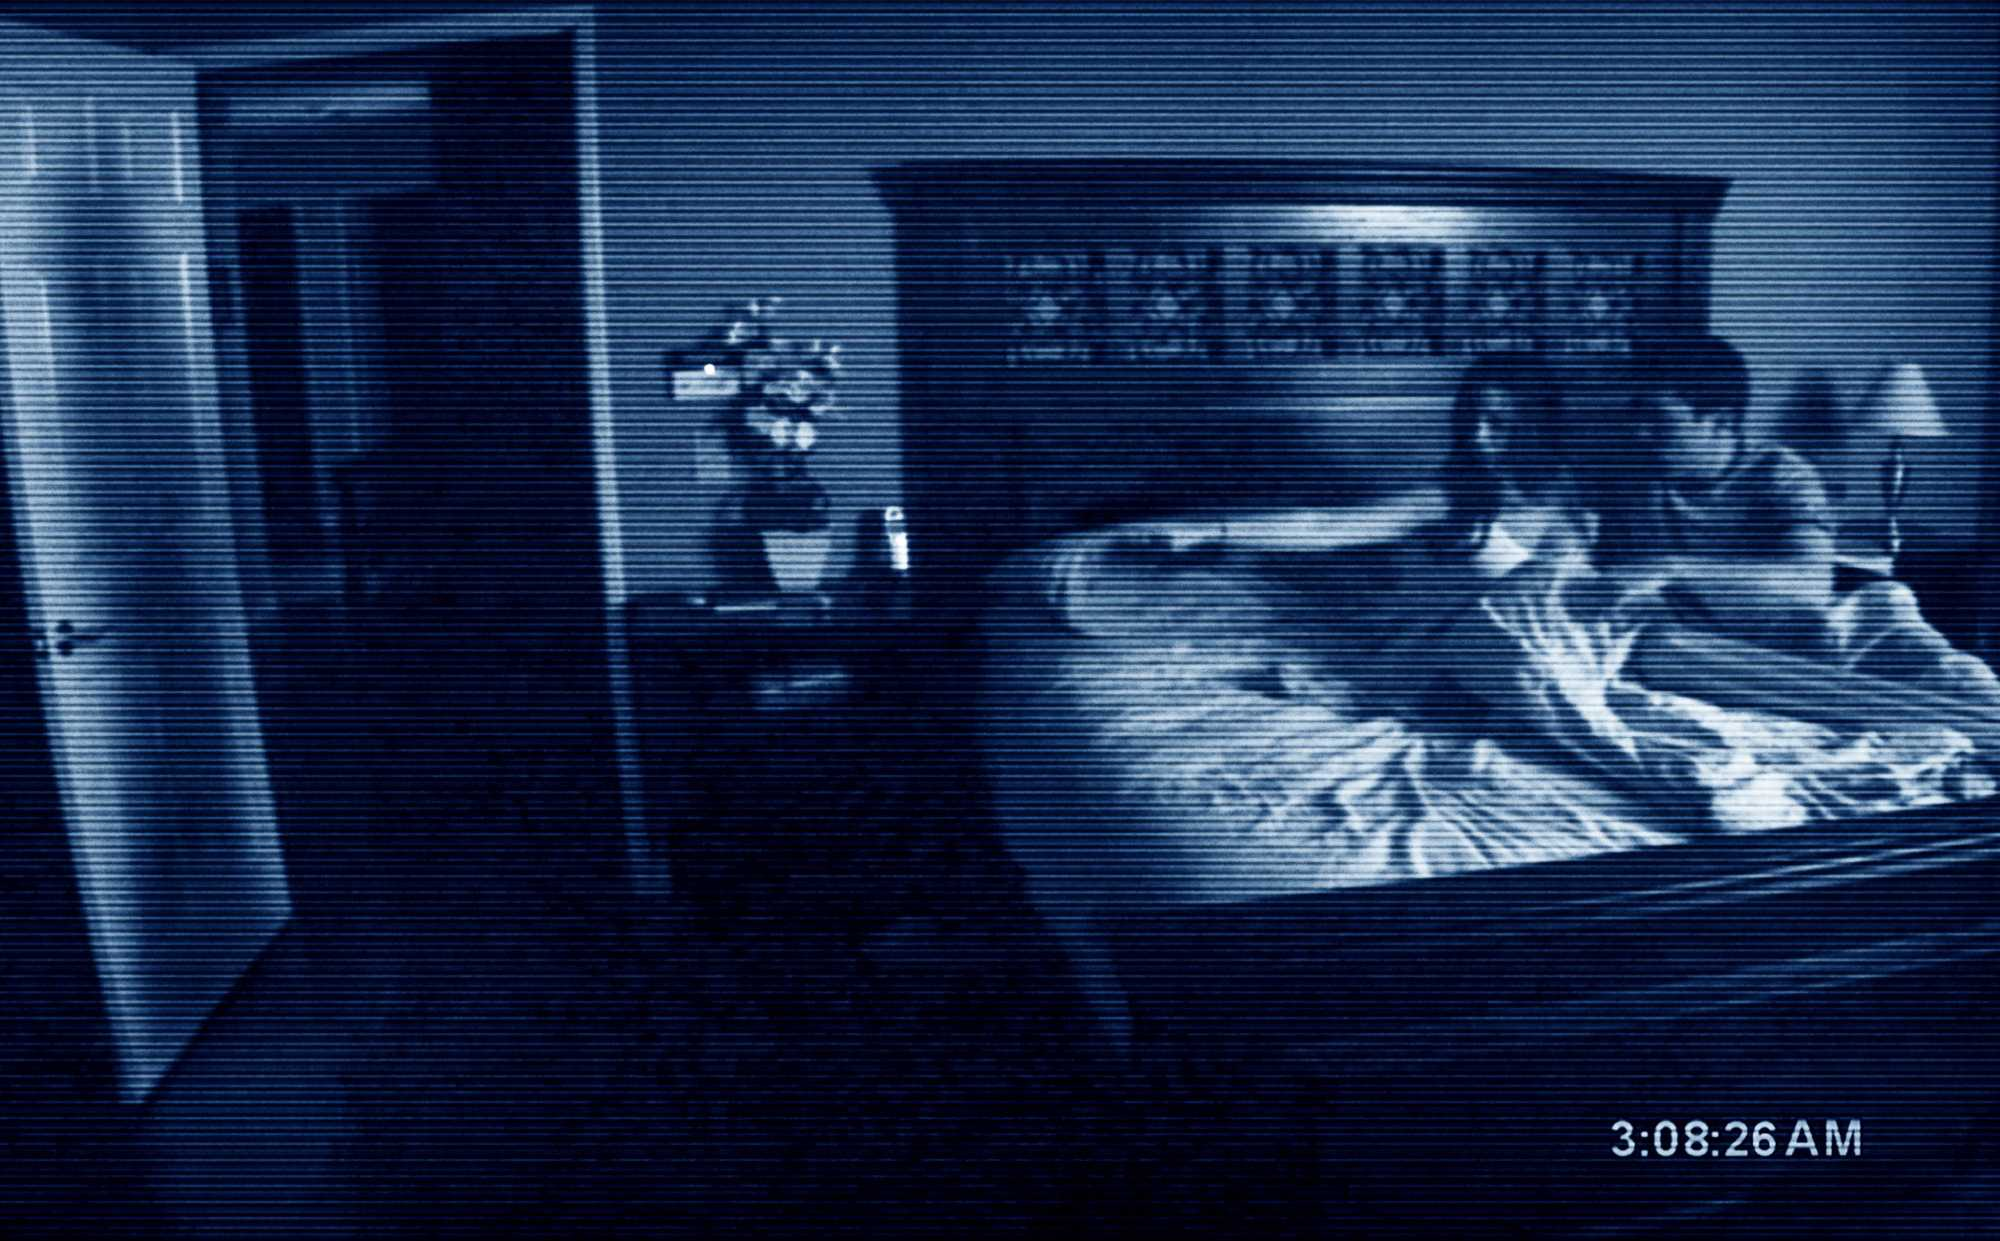 paranormal-activity1-paranormal-activity-6-7-confirmed